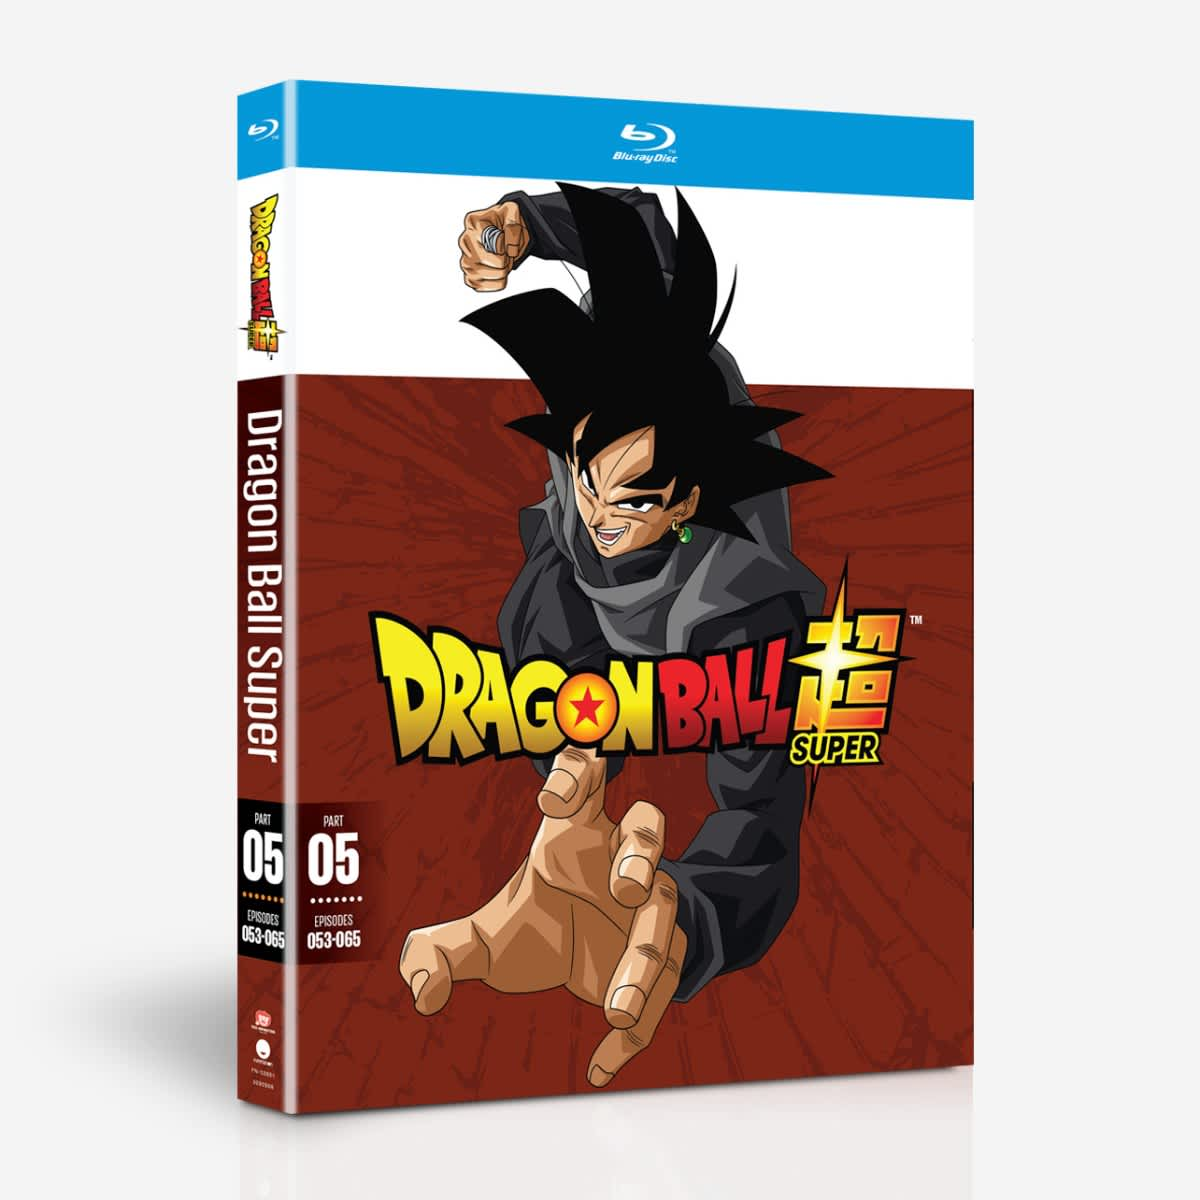 news funimation dragon ball super part five home video dvd blu ray releasing october 2018. Black Bedroom Furniture Sets. Home Design Ideas